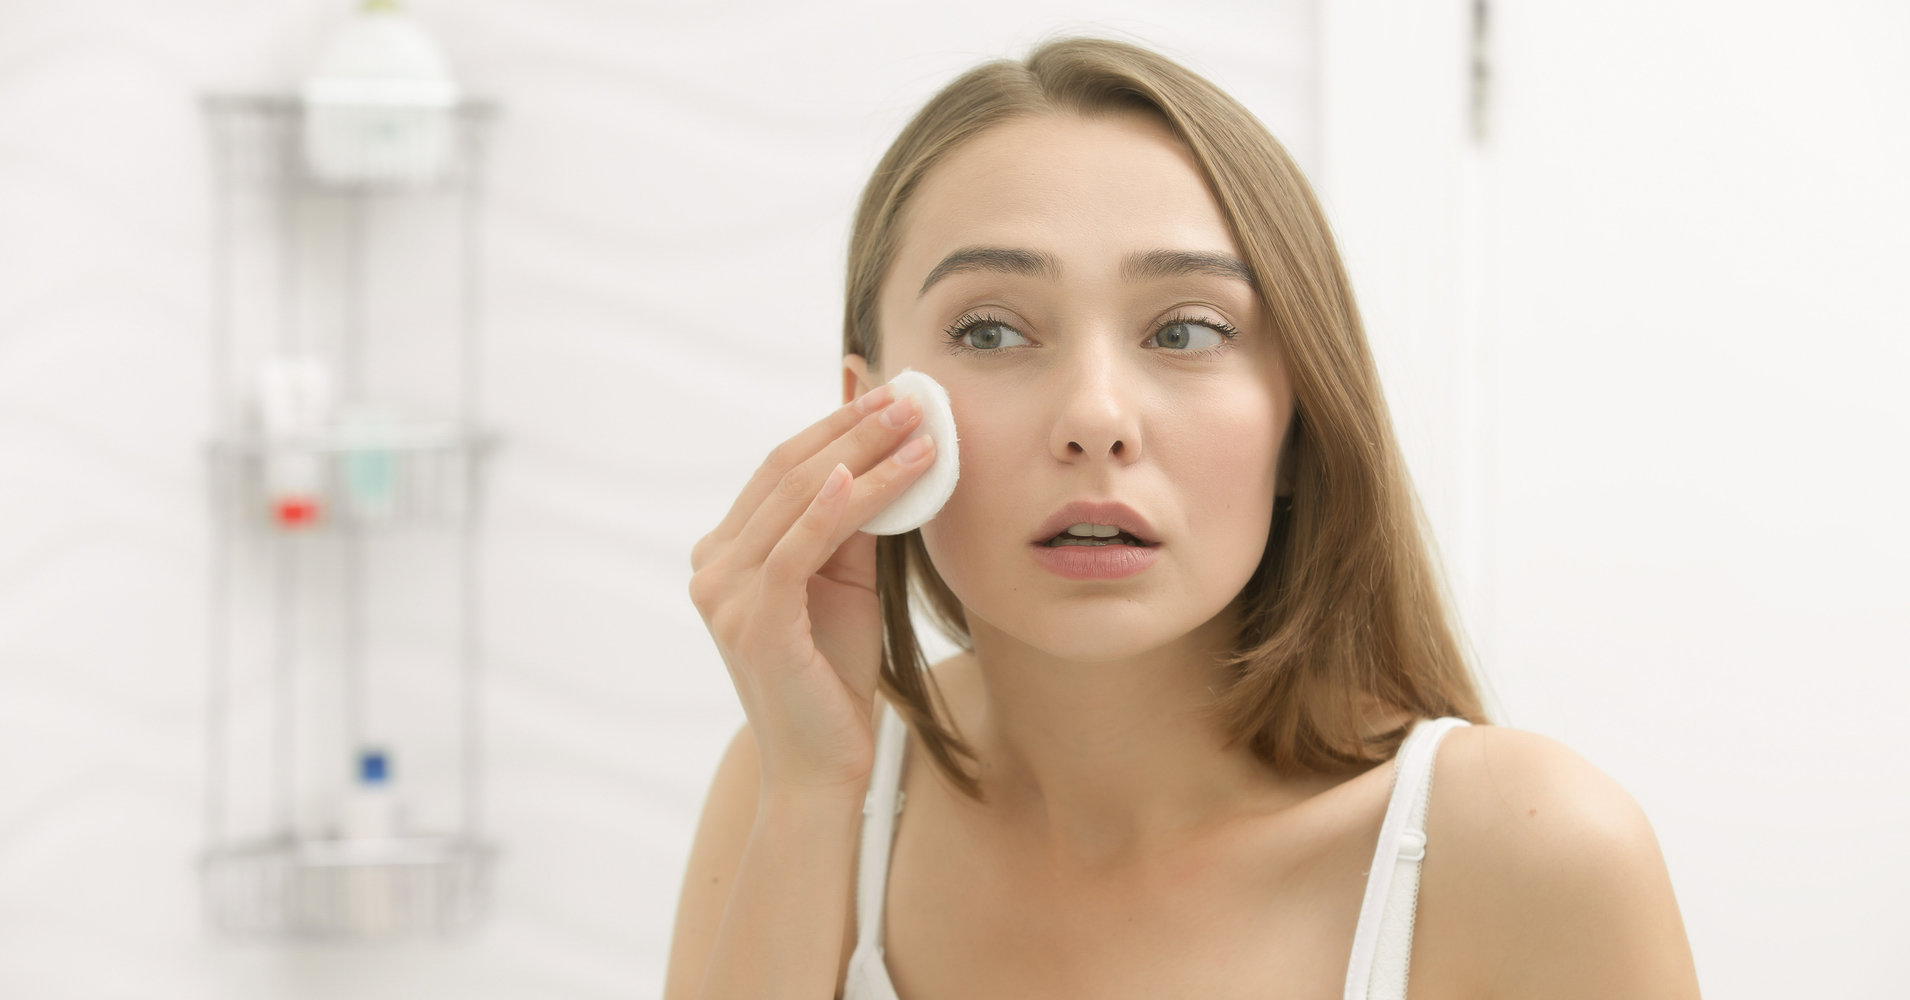 10 Cruelty-Free Makeup Wipes You Can Feel Good About Using